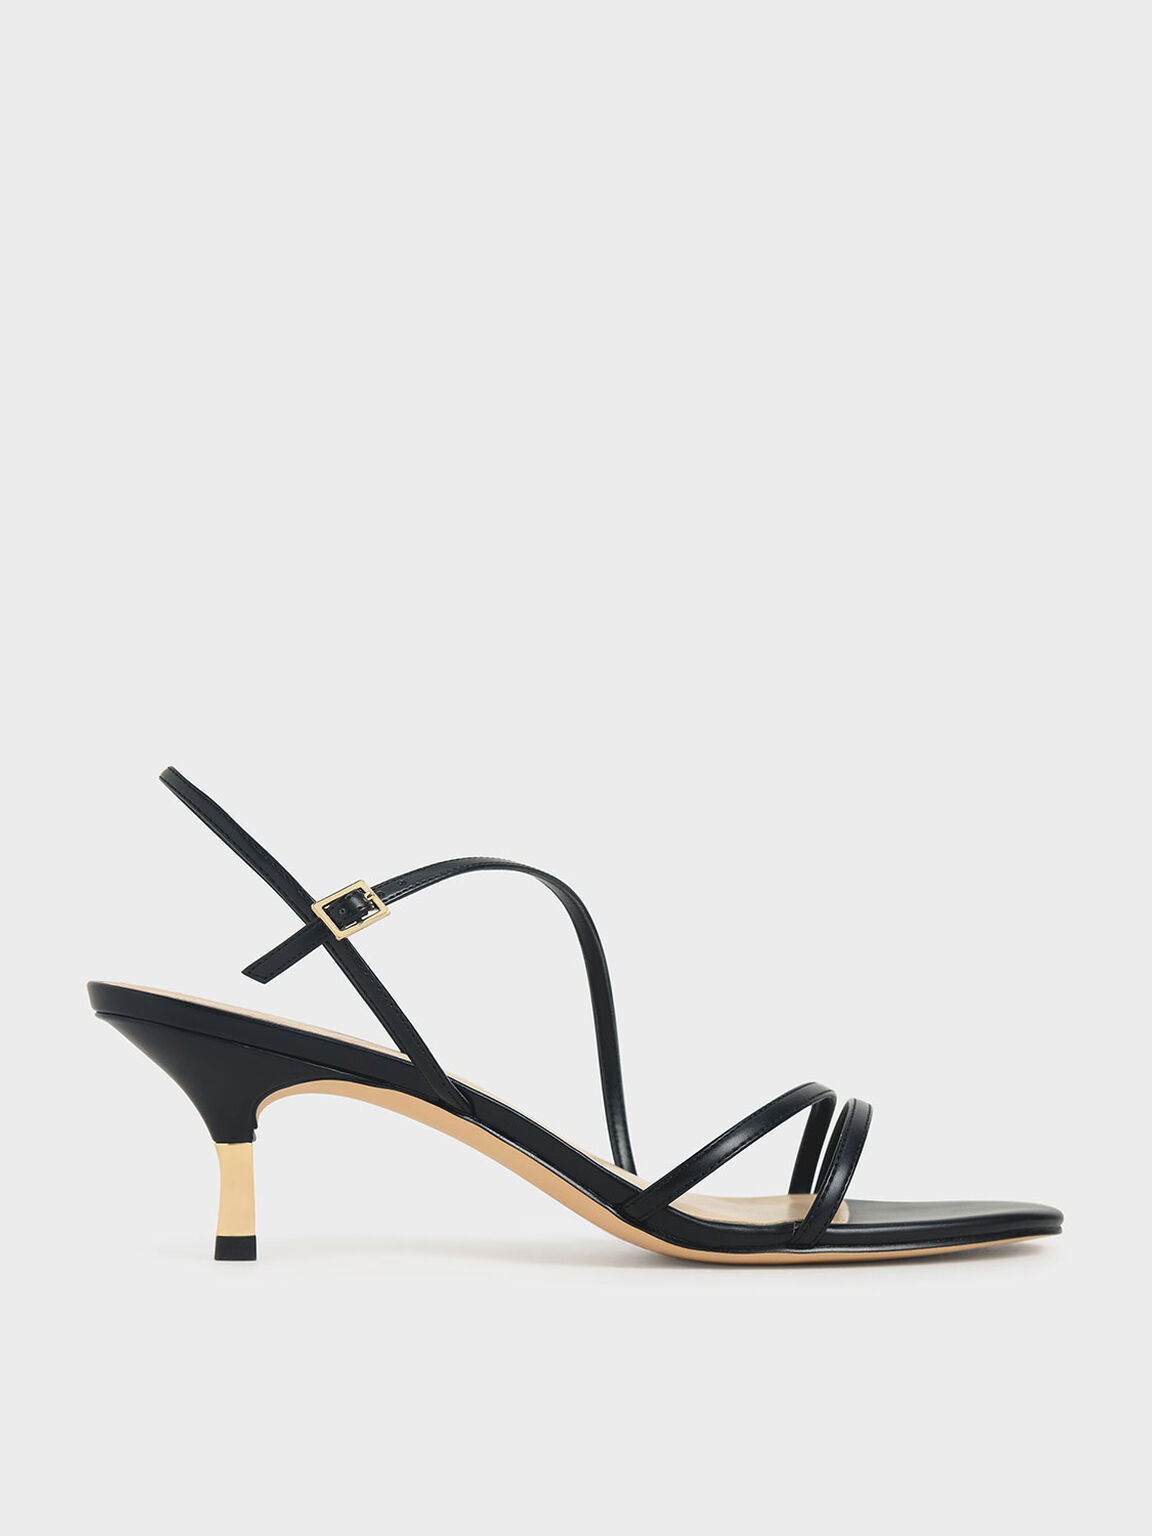 Strappy Metallic Heel Sandals, Black, hi-res